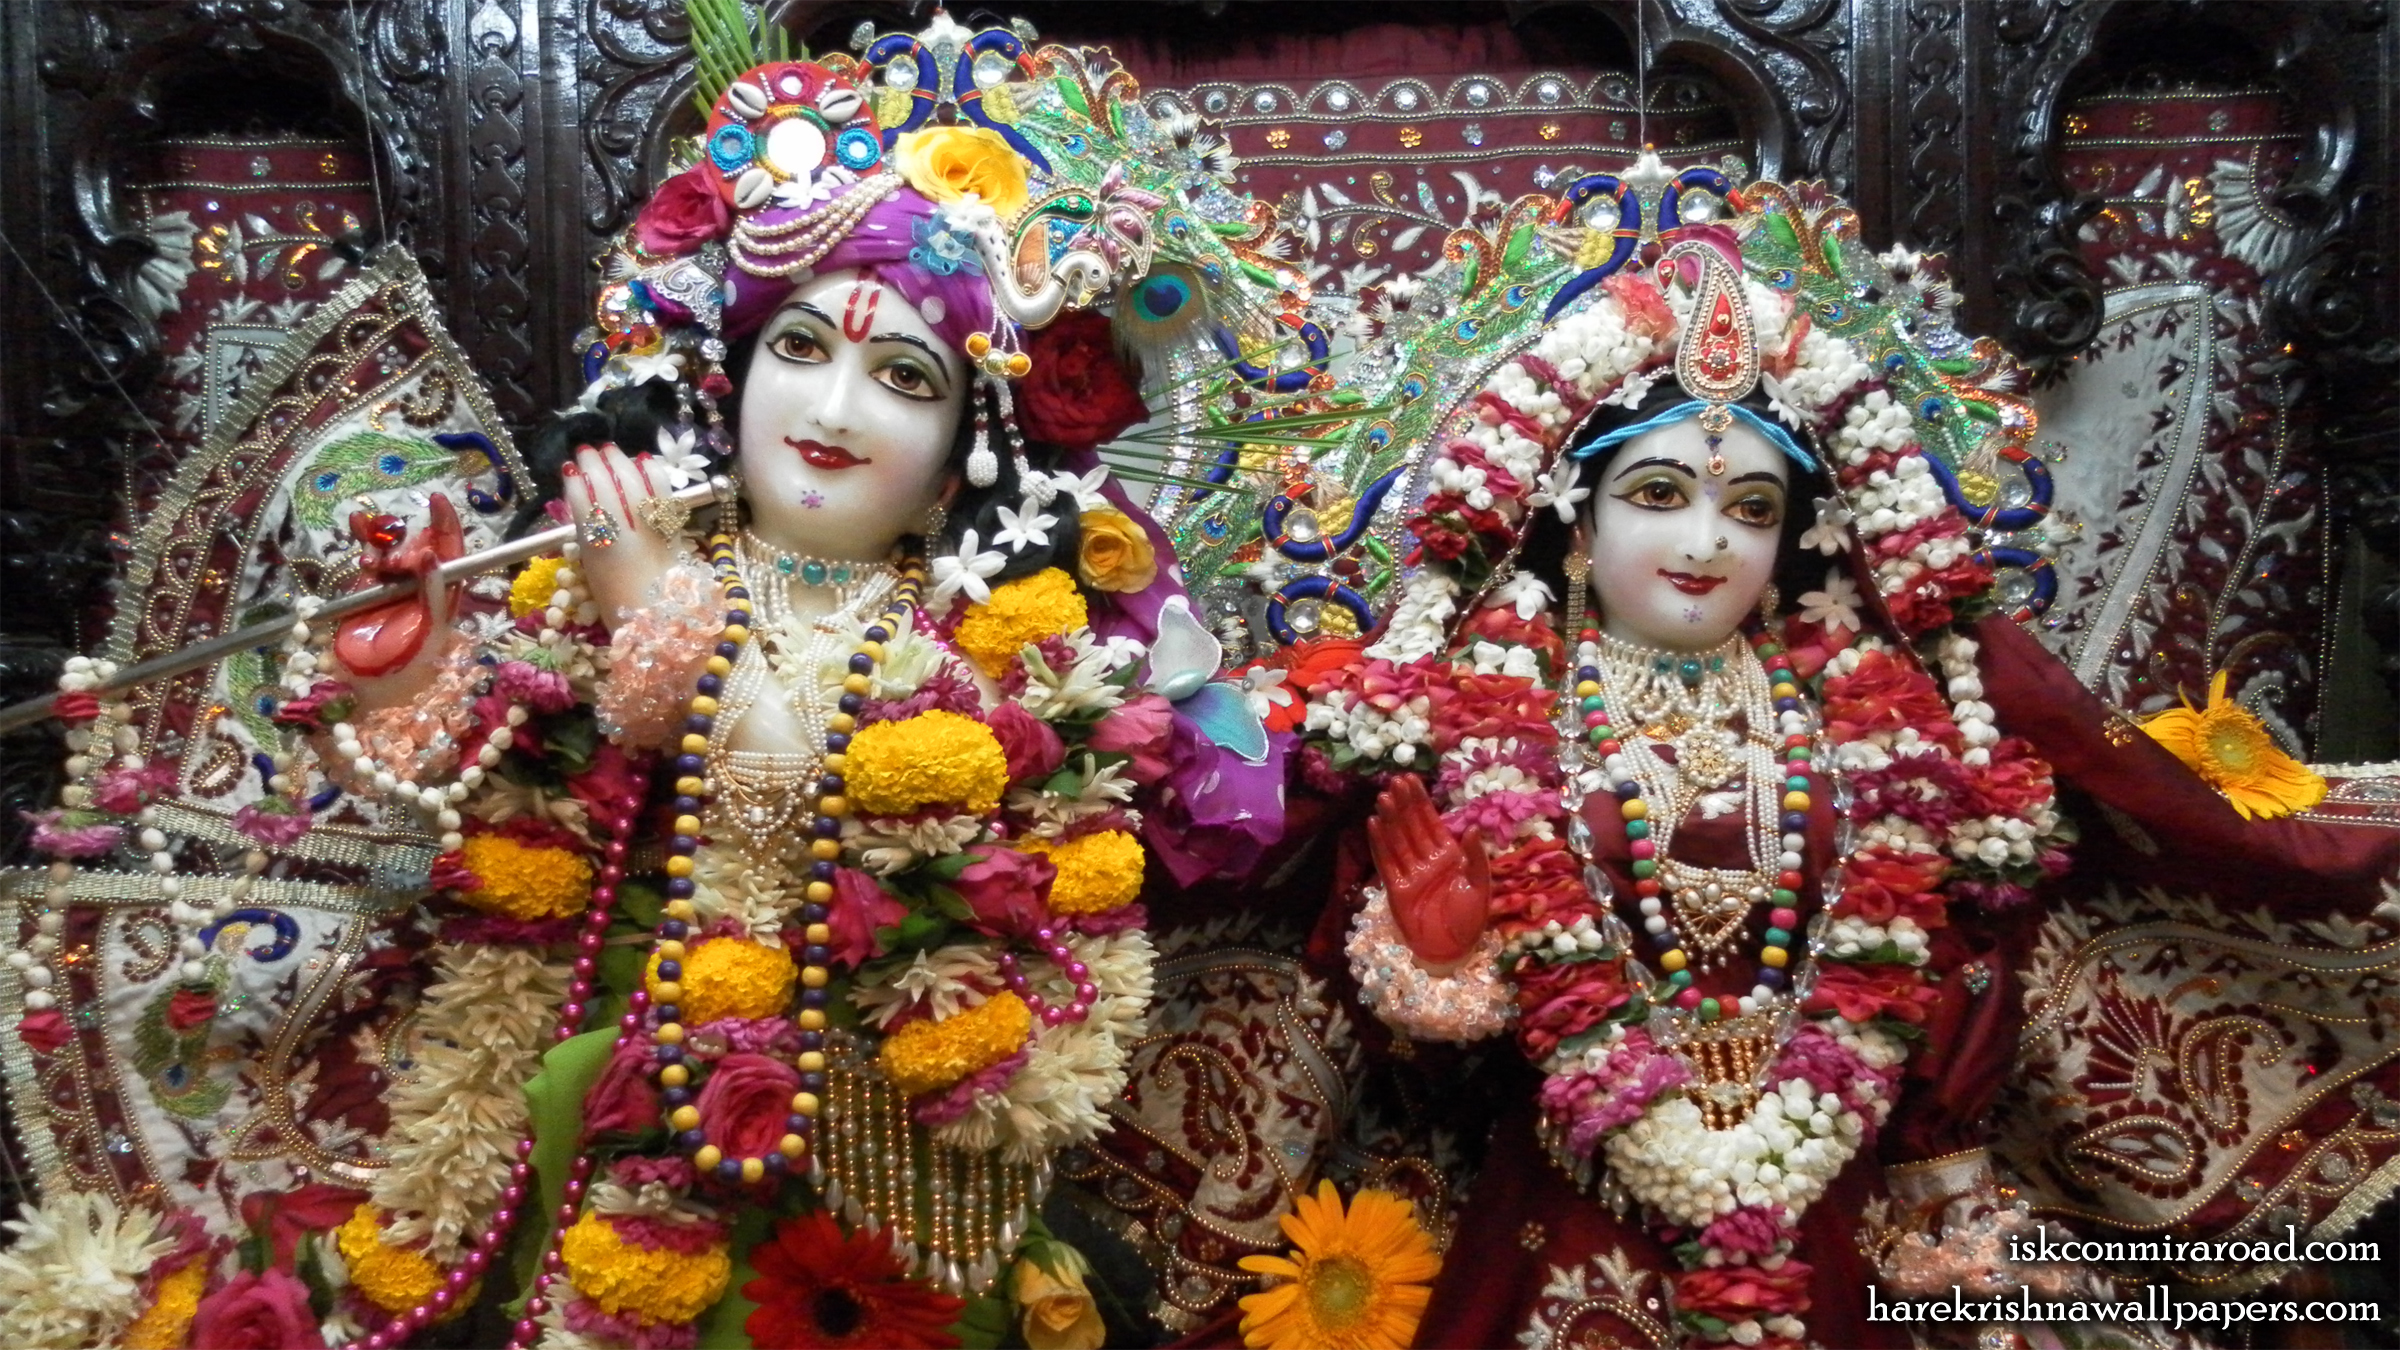 Sri Sri Radha Giridhari Close up Wallpaper (009) Size 2400x1350 Download